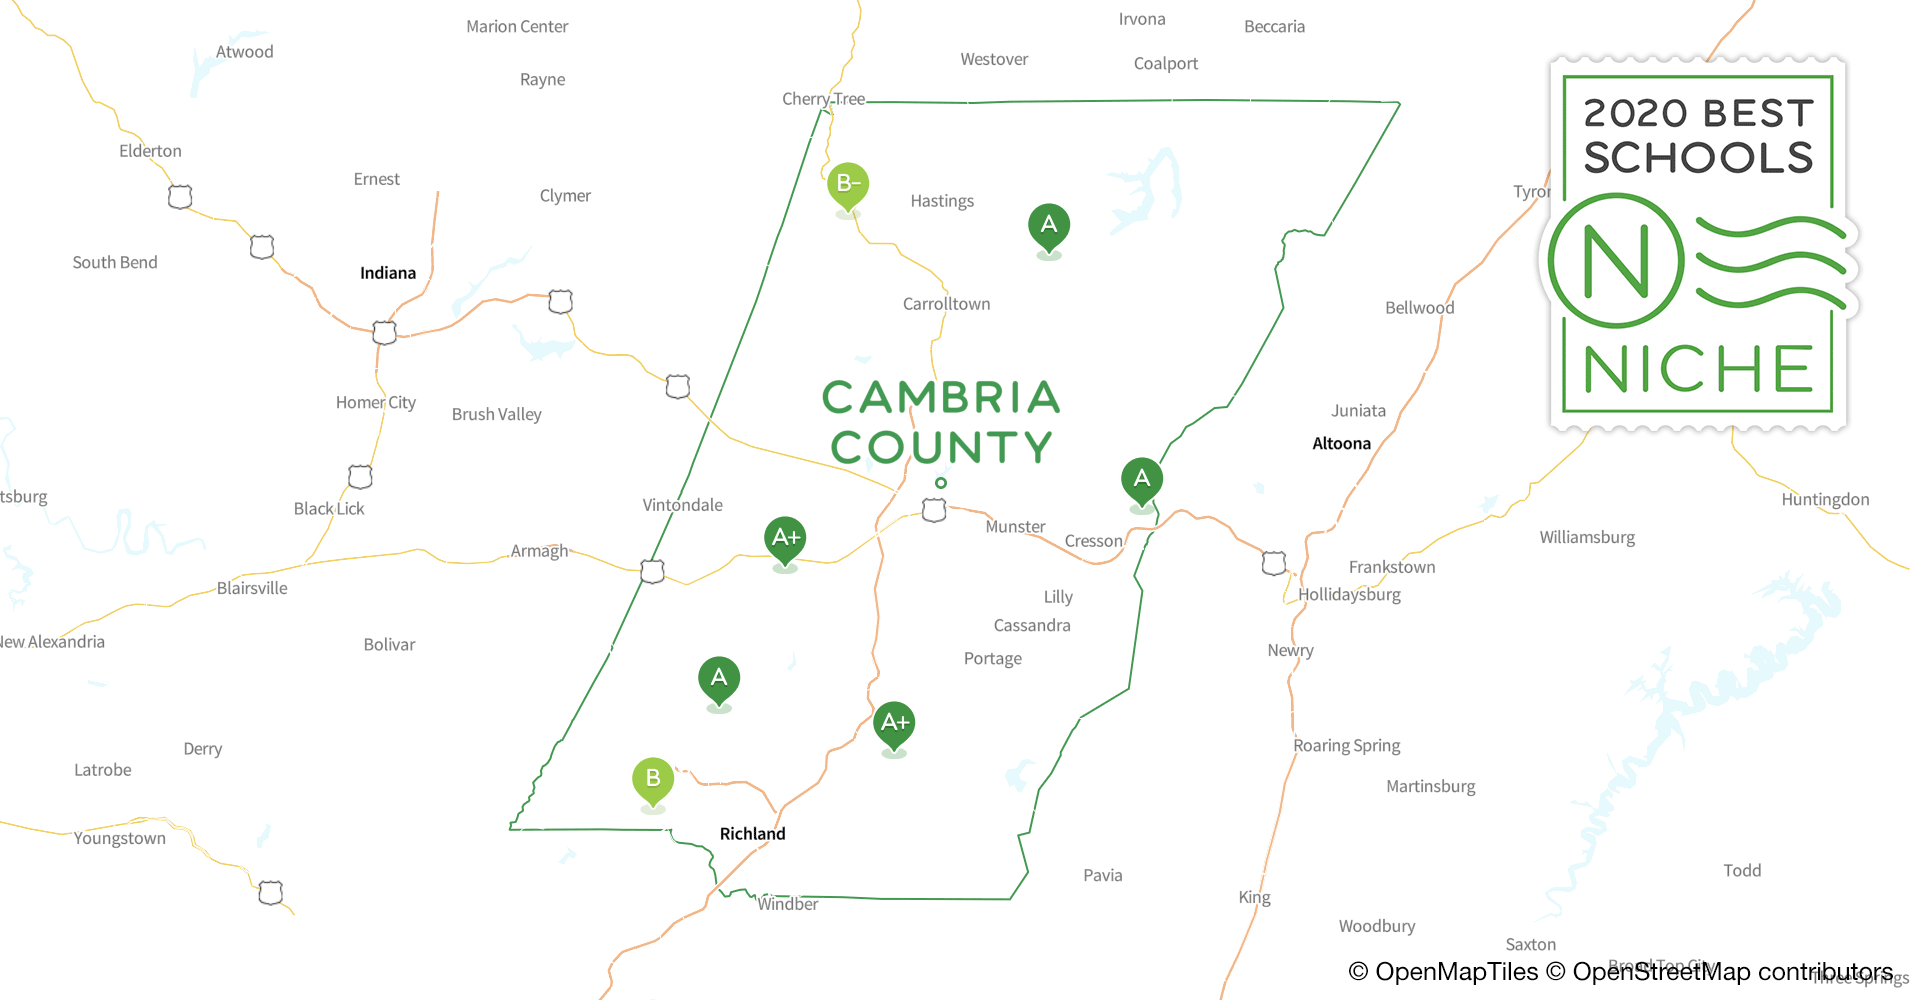 Districts in Cambria County, PA - Niche on fallingwater pa map, ghost town trail pa map, cambria city map, chester county, red land pa map, summerhill pa map, bucks county, lancaster county, mt. hermon map, johnstown region map, somerset county, mount davis pa map, delaware county, northern pa road map, erie county, jefferson county, pennsylvania map, white township pa map, chester co pa map, bedford county, cambria city pa, indiana county, schuylkill haven pa map, berks county interactive map, blair county, allegheny county, westmoreland county, cambria township pa map, butler county, beaver county, fulton county, south fork pa map, bucks co pa map, northern virginia dc maryland map, fayette county, crawford county, franklin county, cumberland county, brownstown pa map,